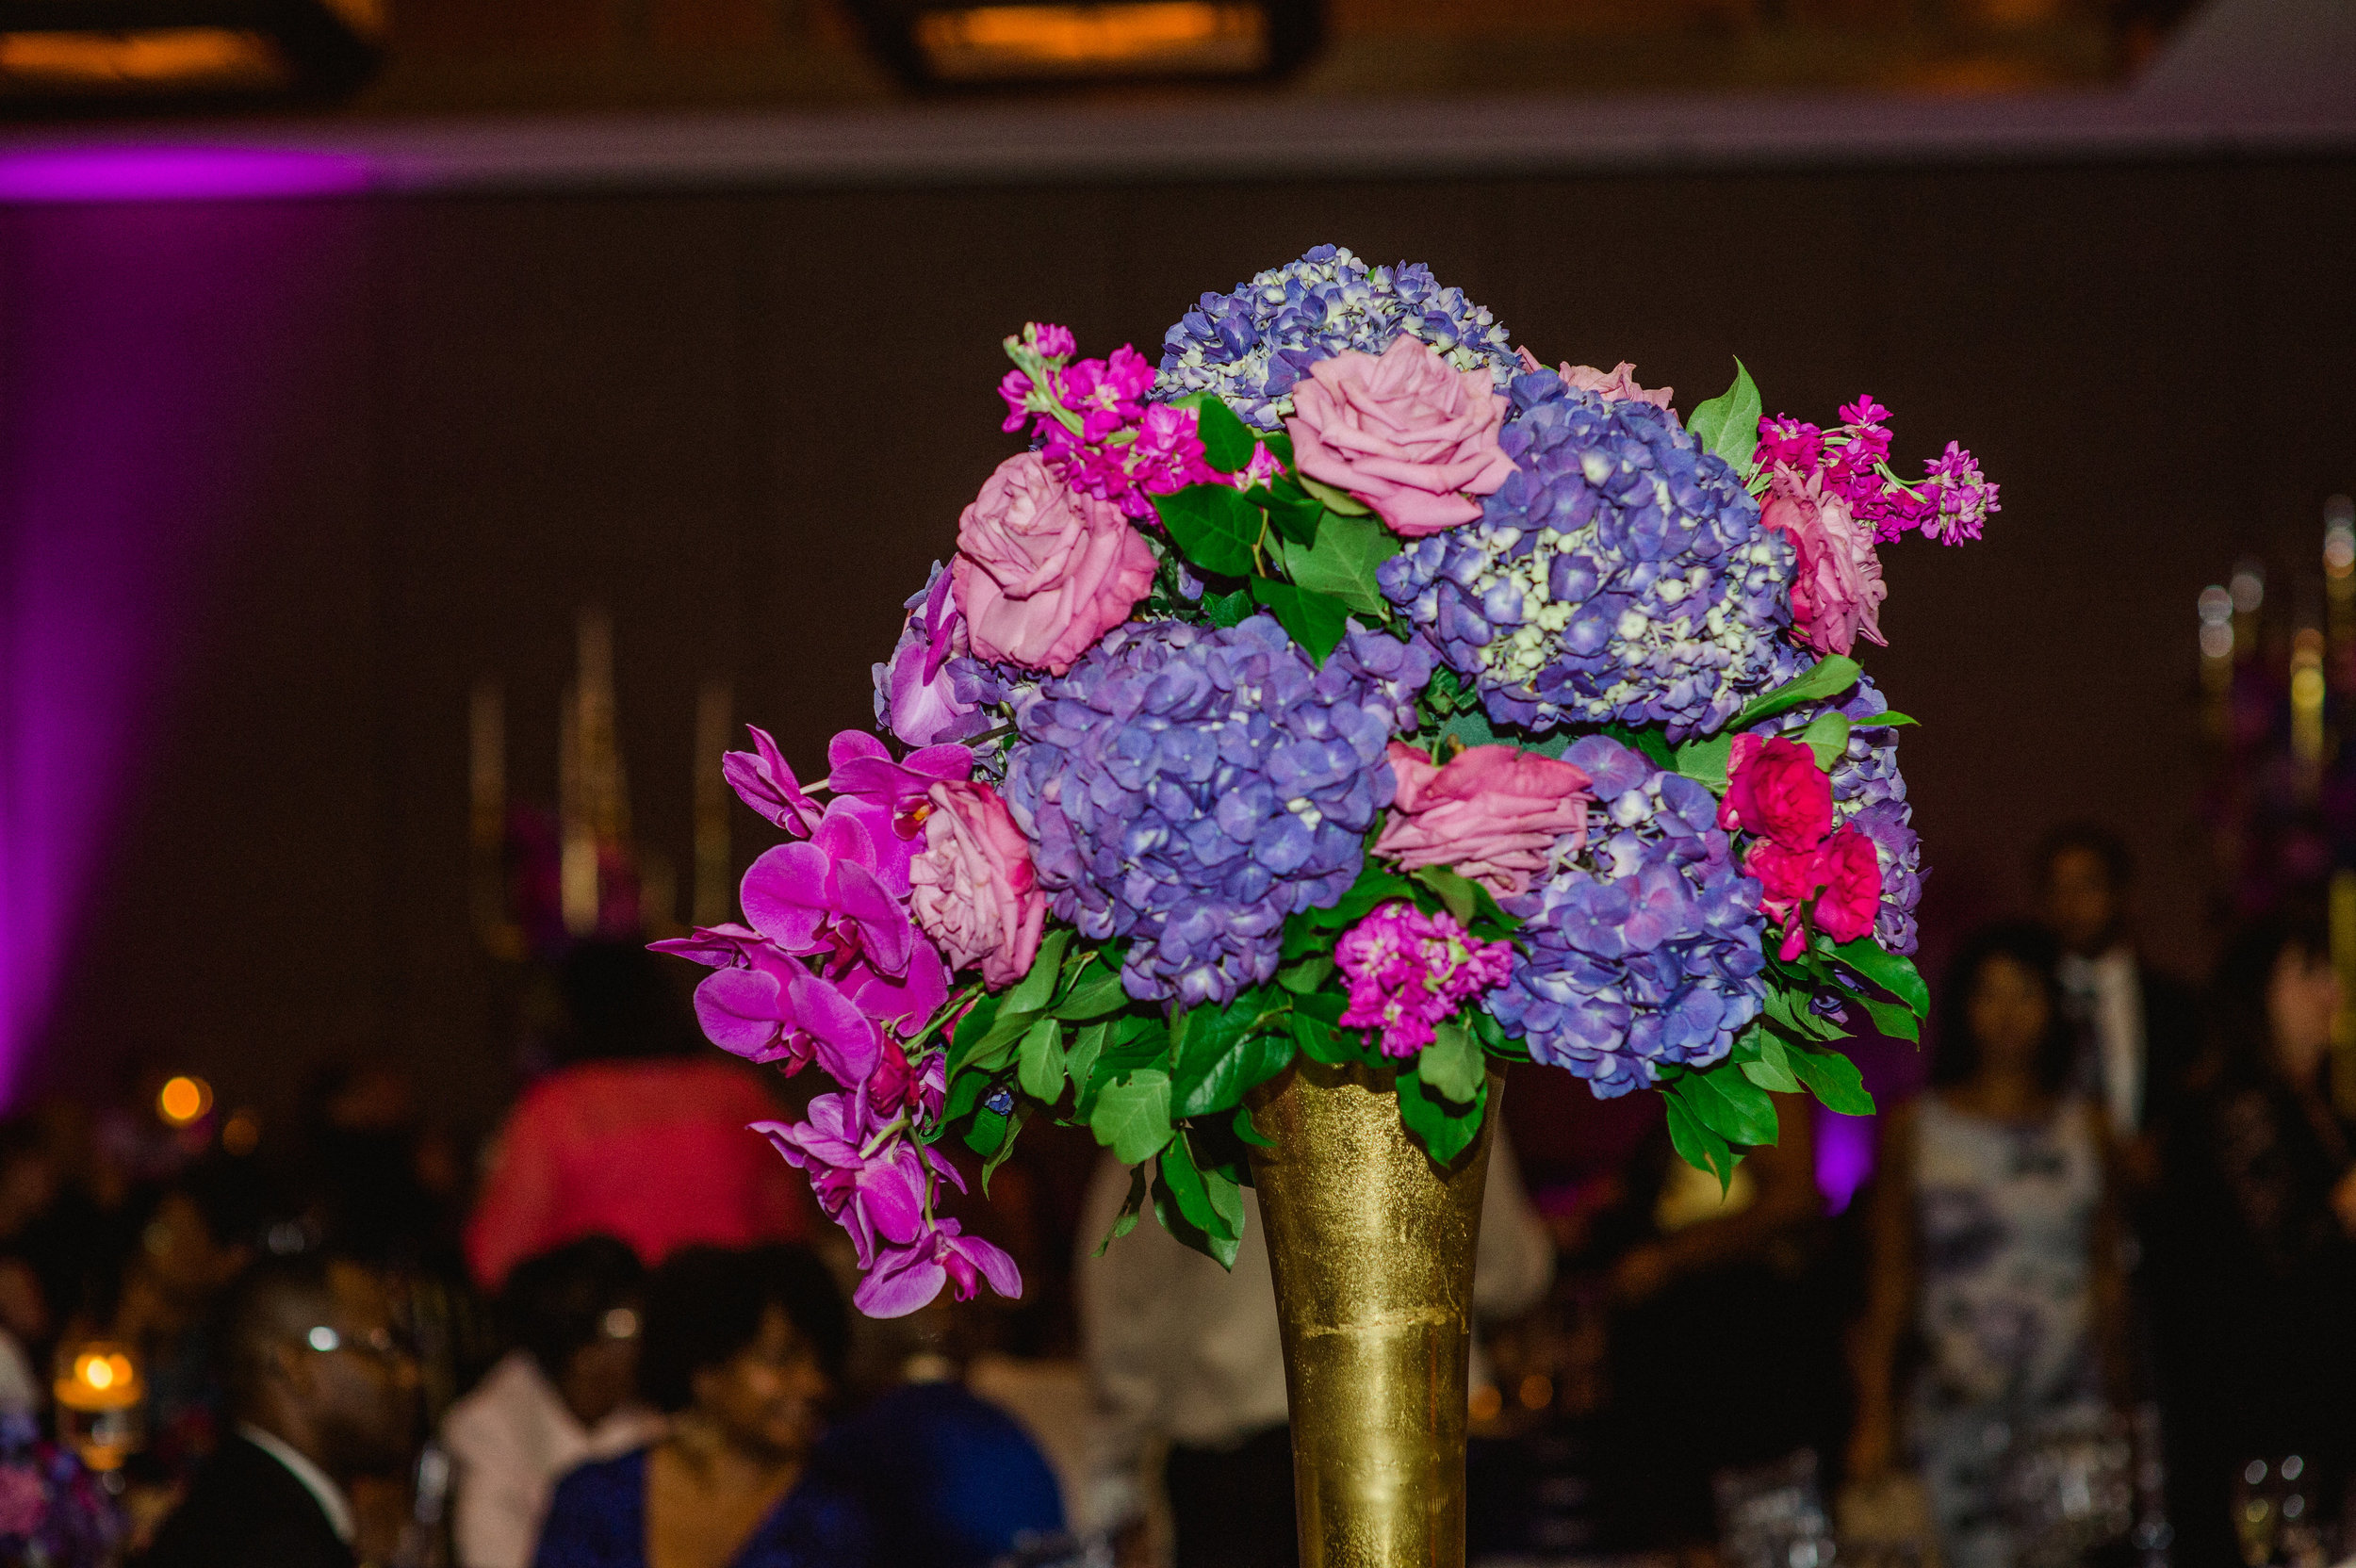 imani&chris|wedding|details-121.jpg